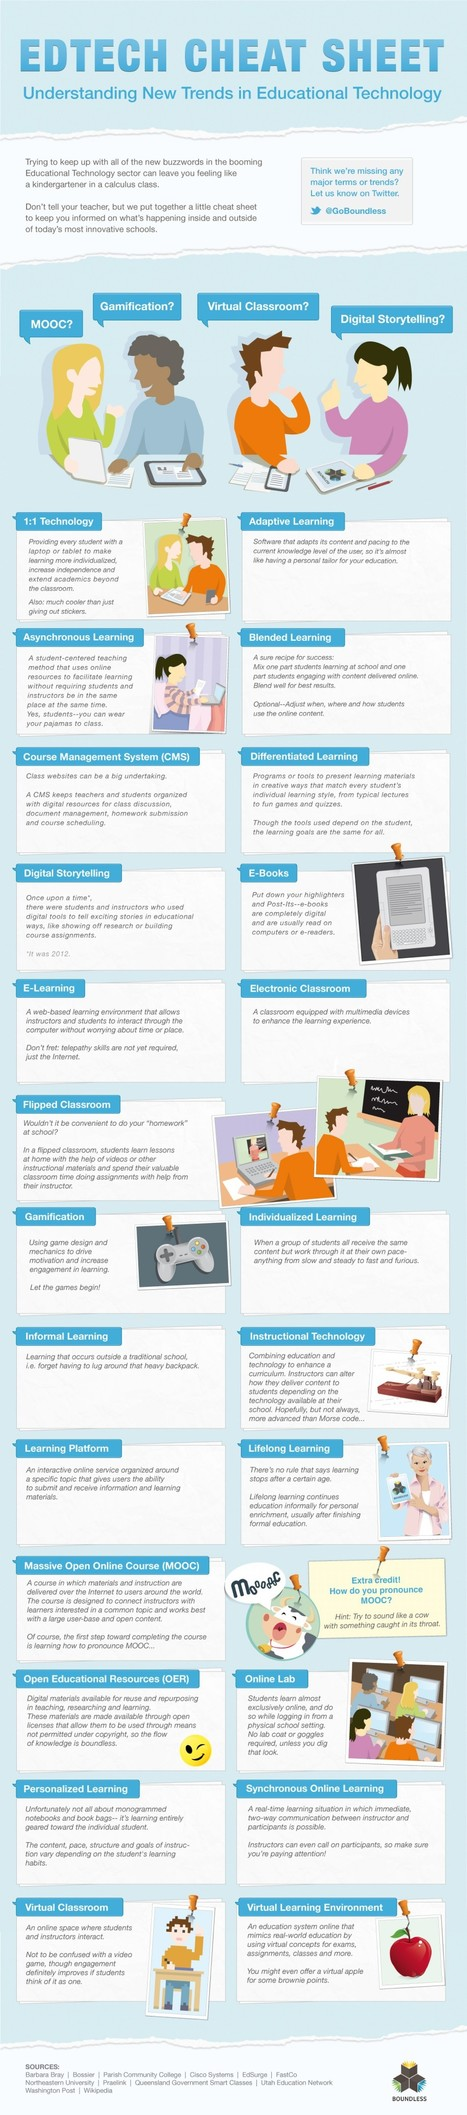 The Teacher's EdTech Cheat Sheet - Learn Egg | Tools, Tech and education | Scoop.it